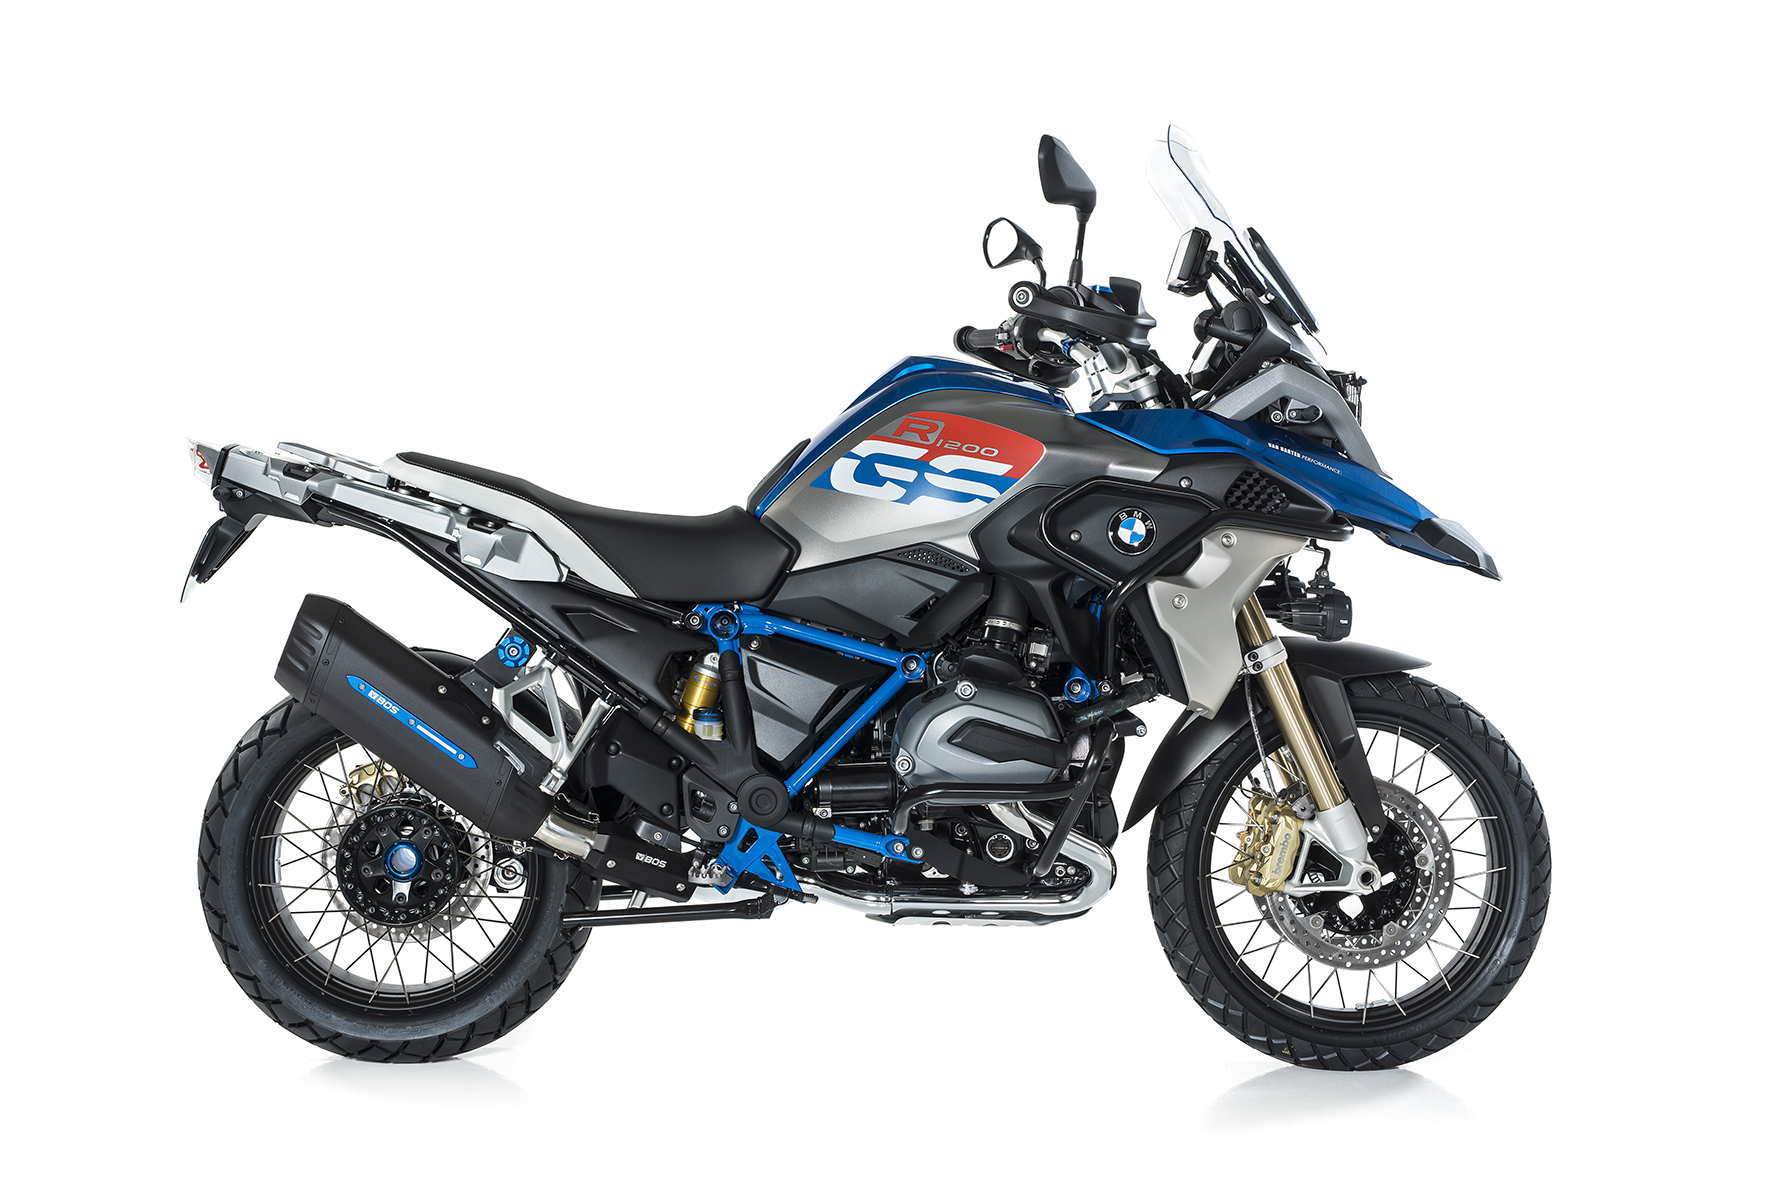 BMW R 1200 GS / Adventure ab 2017 BOS Desert Fox Rallye Edition